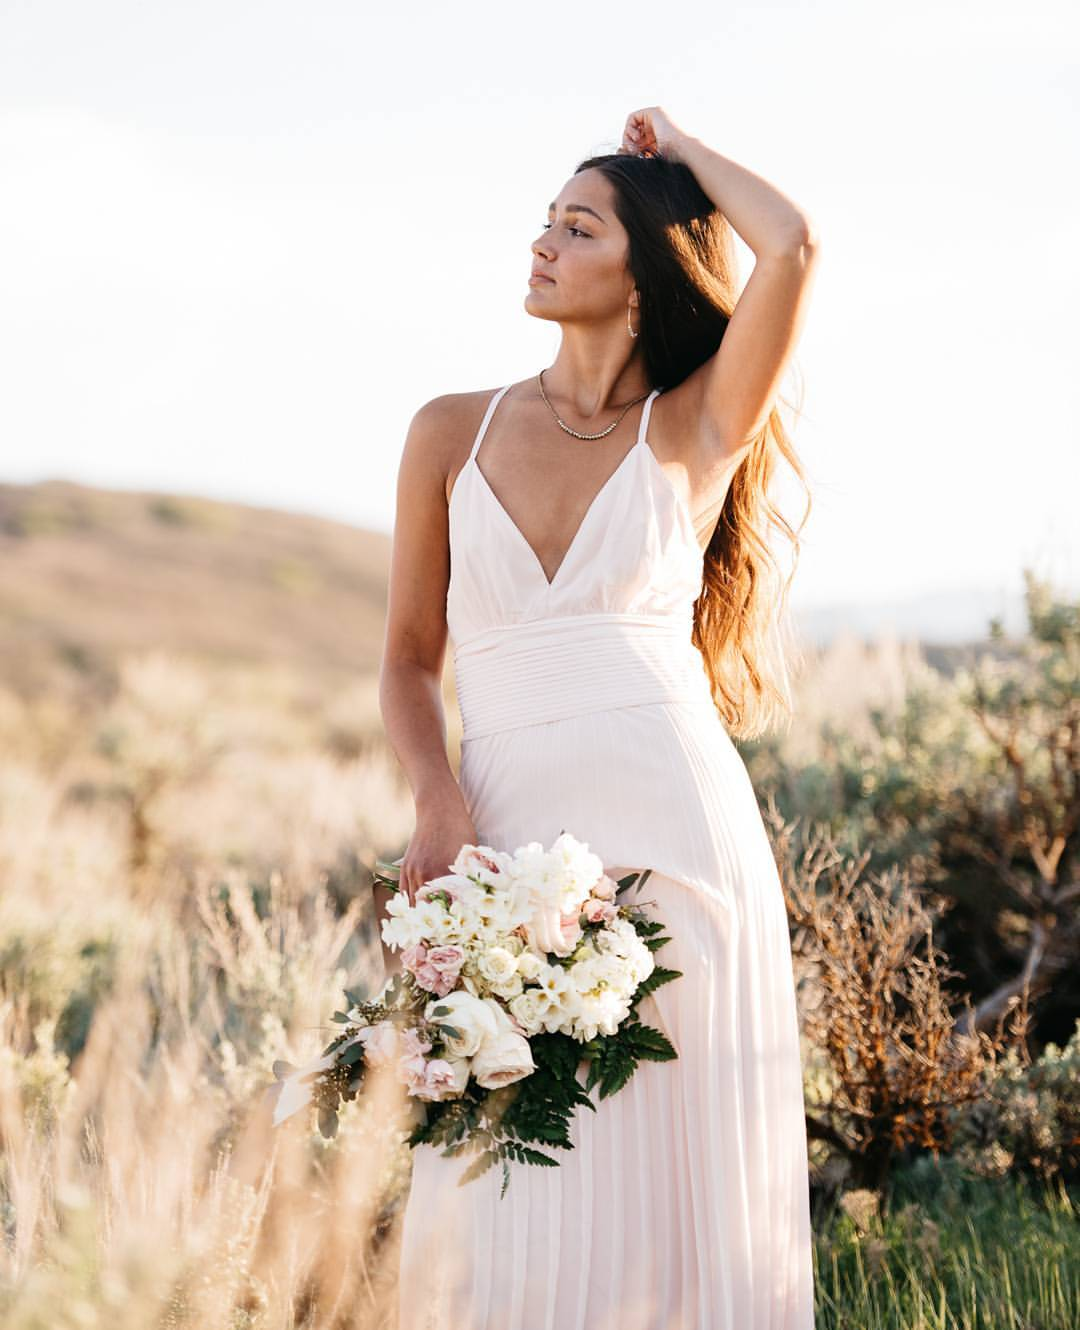 A bride posing with a bouquet out in a farm